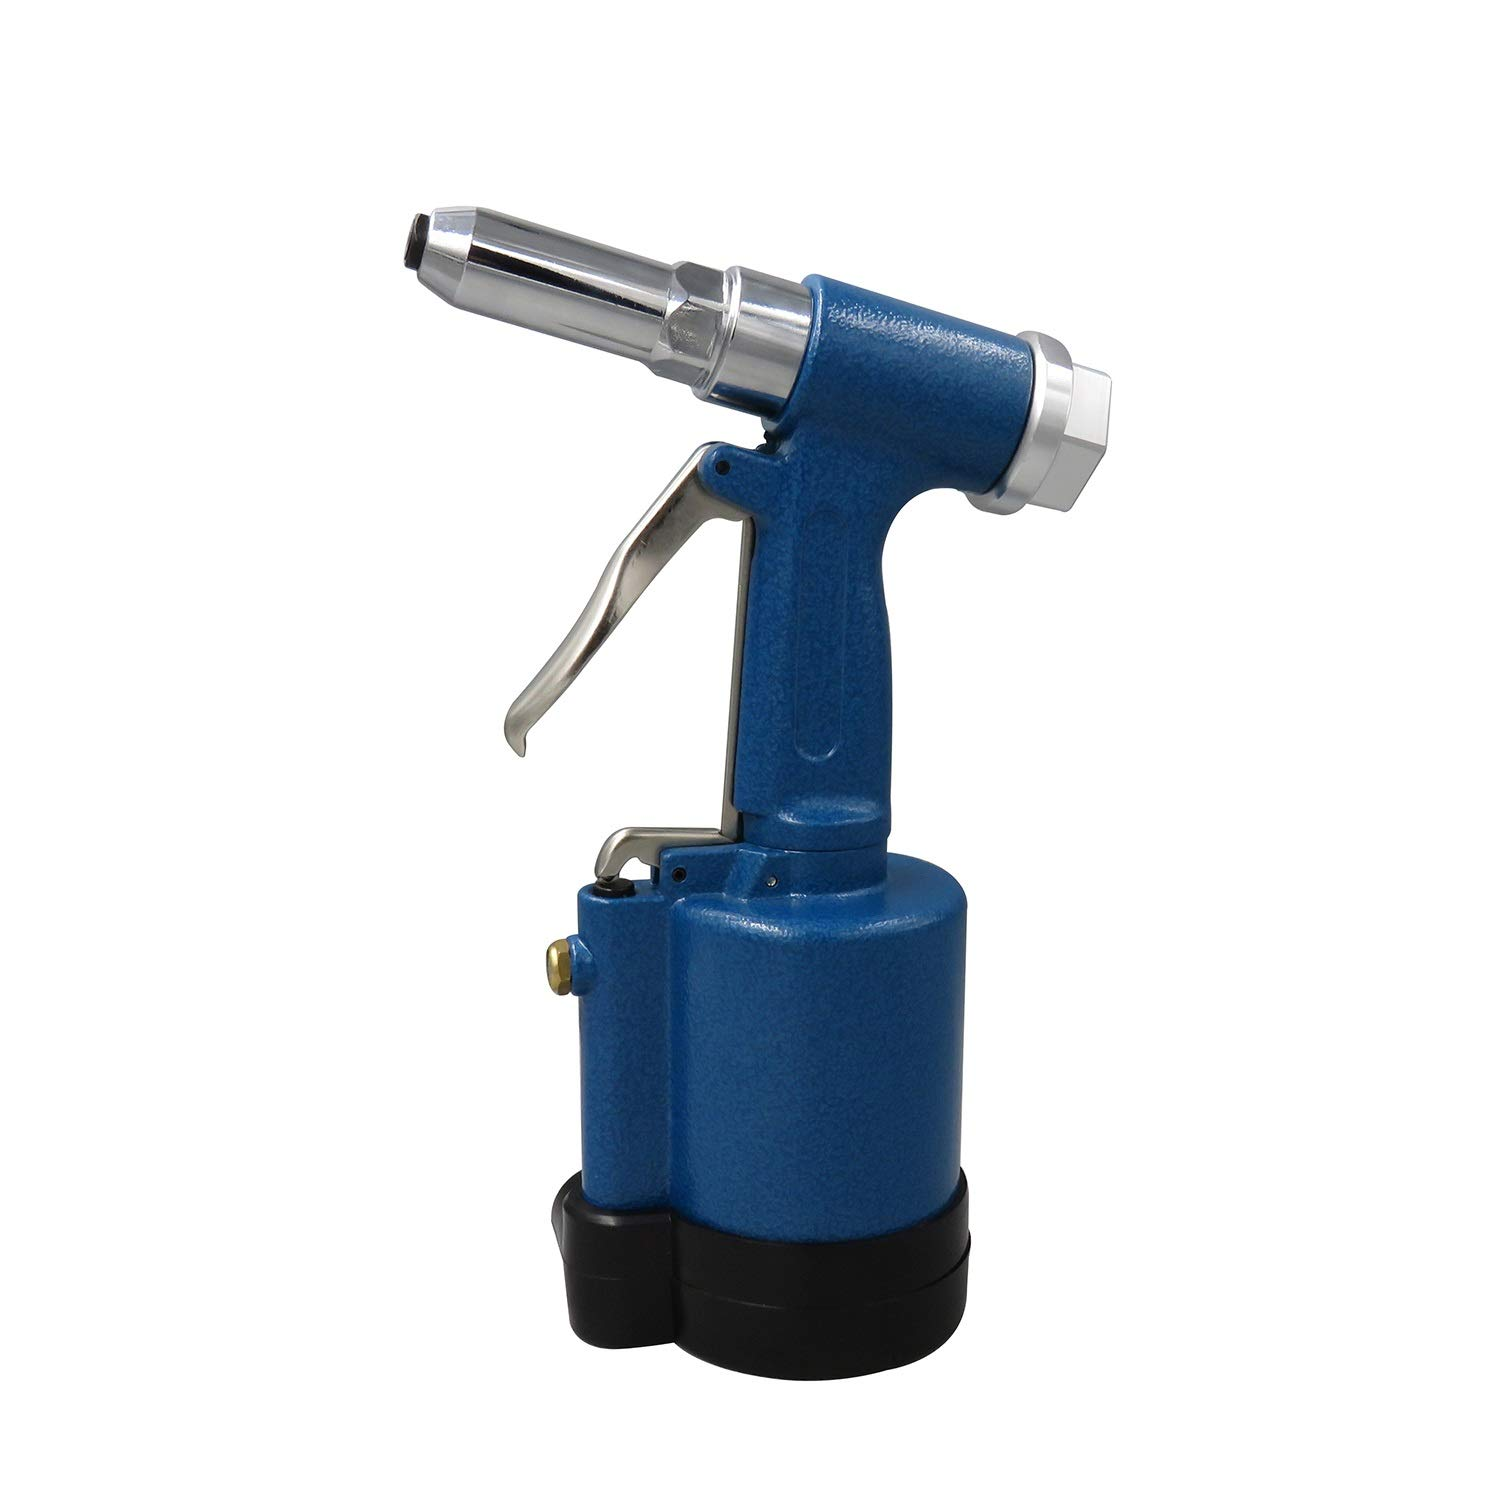 Hydraulic Pneumatic Rivet Gun, Stainless Steel Blind Rivet Gun, Industrial Grade Three-jaw Riveting Tool (Color : Blue) by XIAOL-Pneumatic Tool